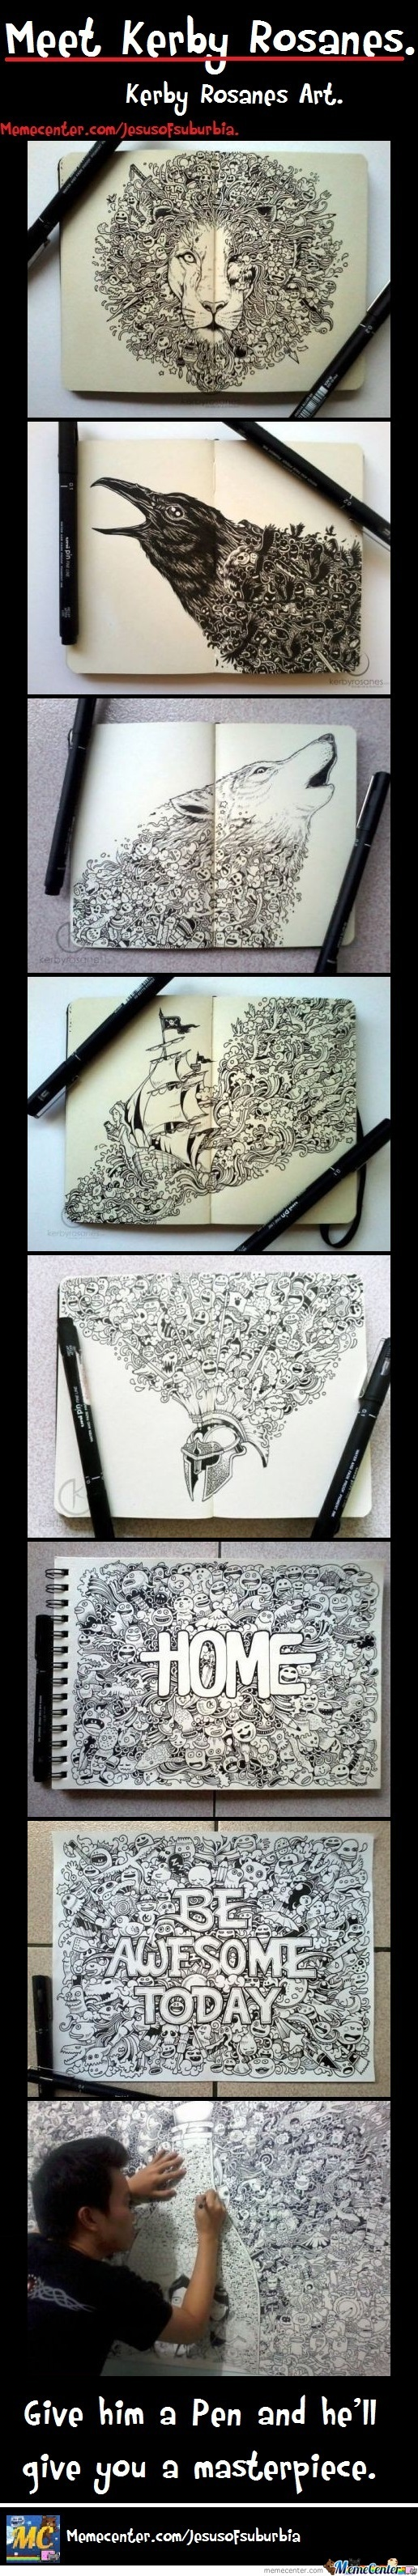 Just Kerby Rosanes